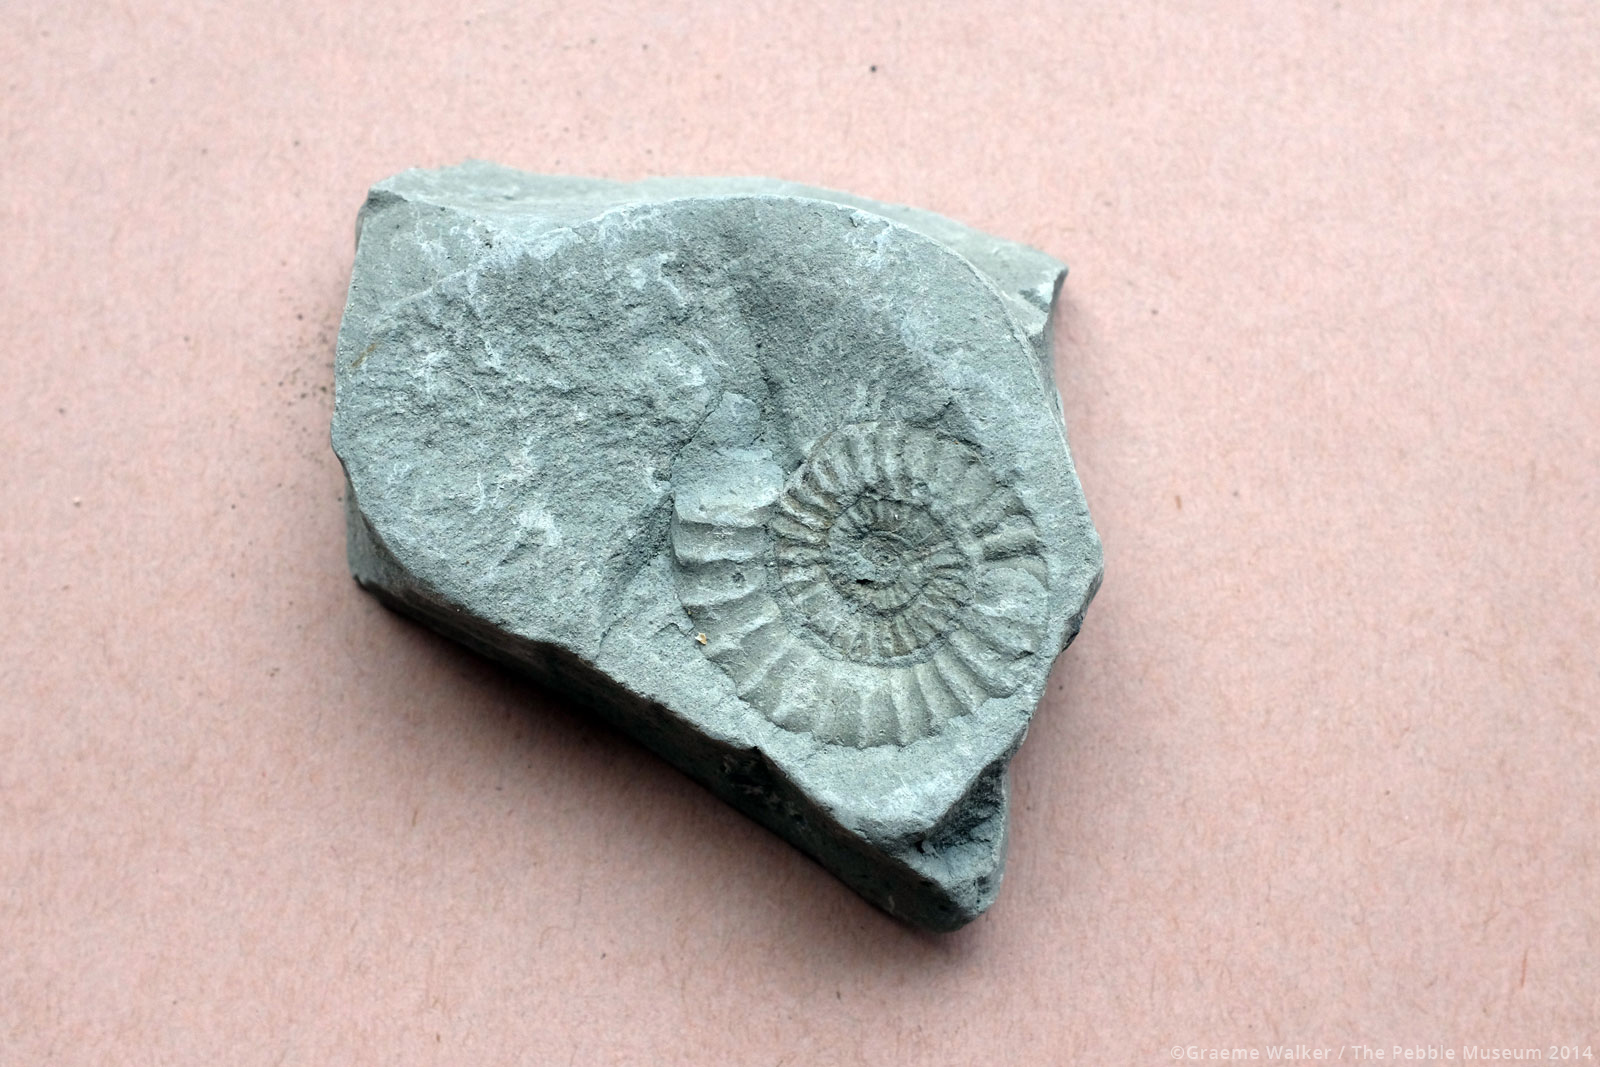 Ammonite Fossil © Graeme Walker / The Pebble Museum 2019